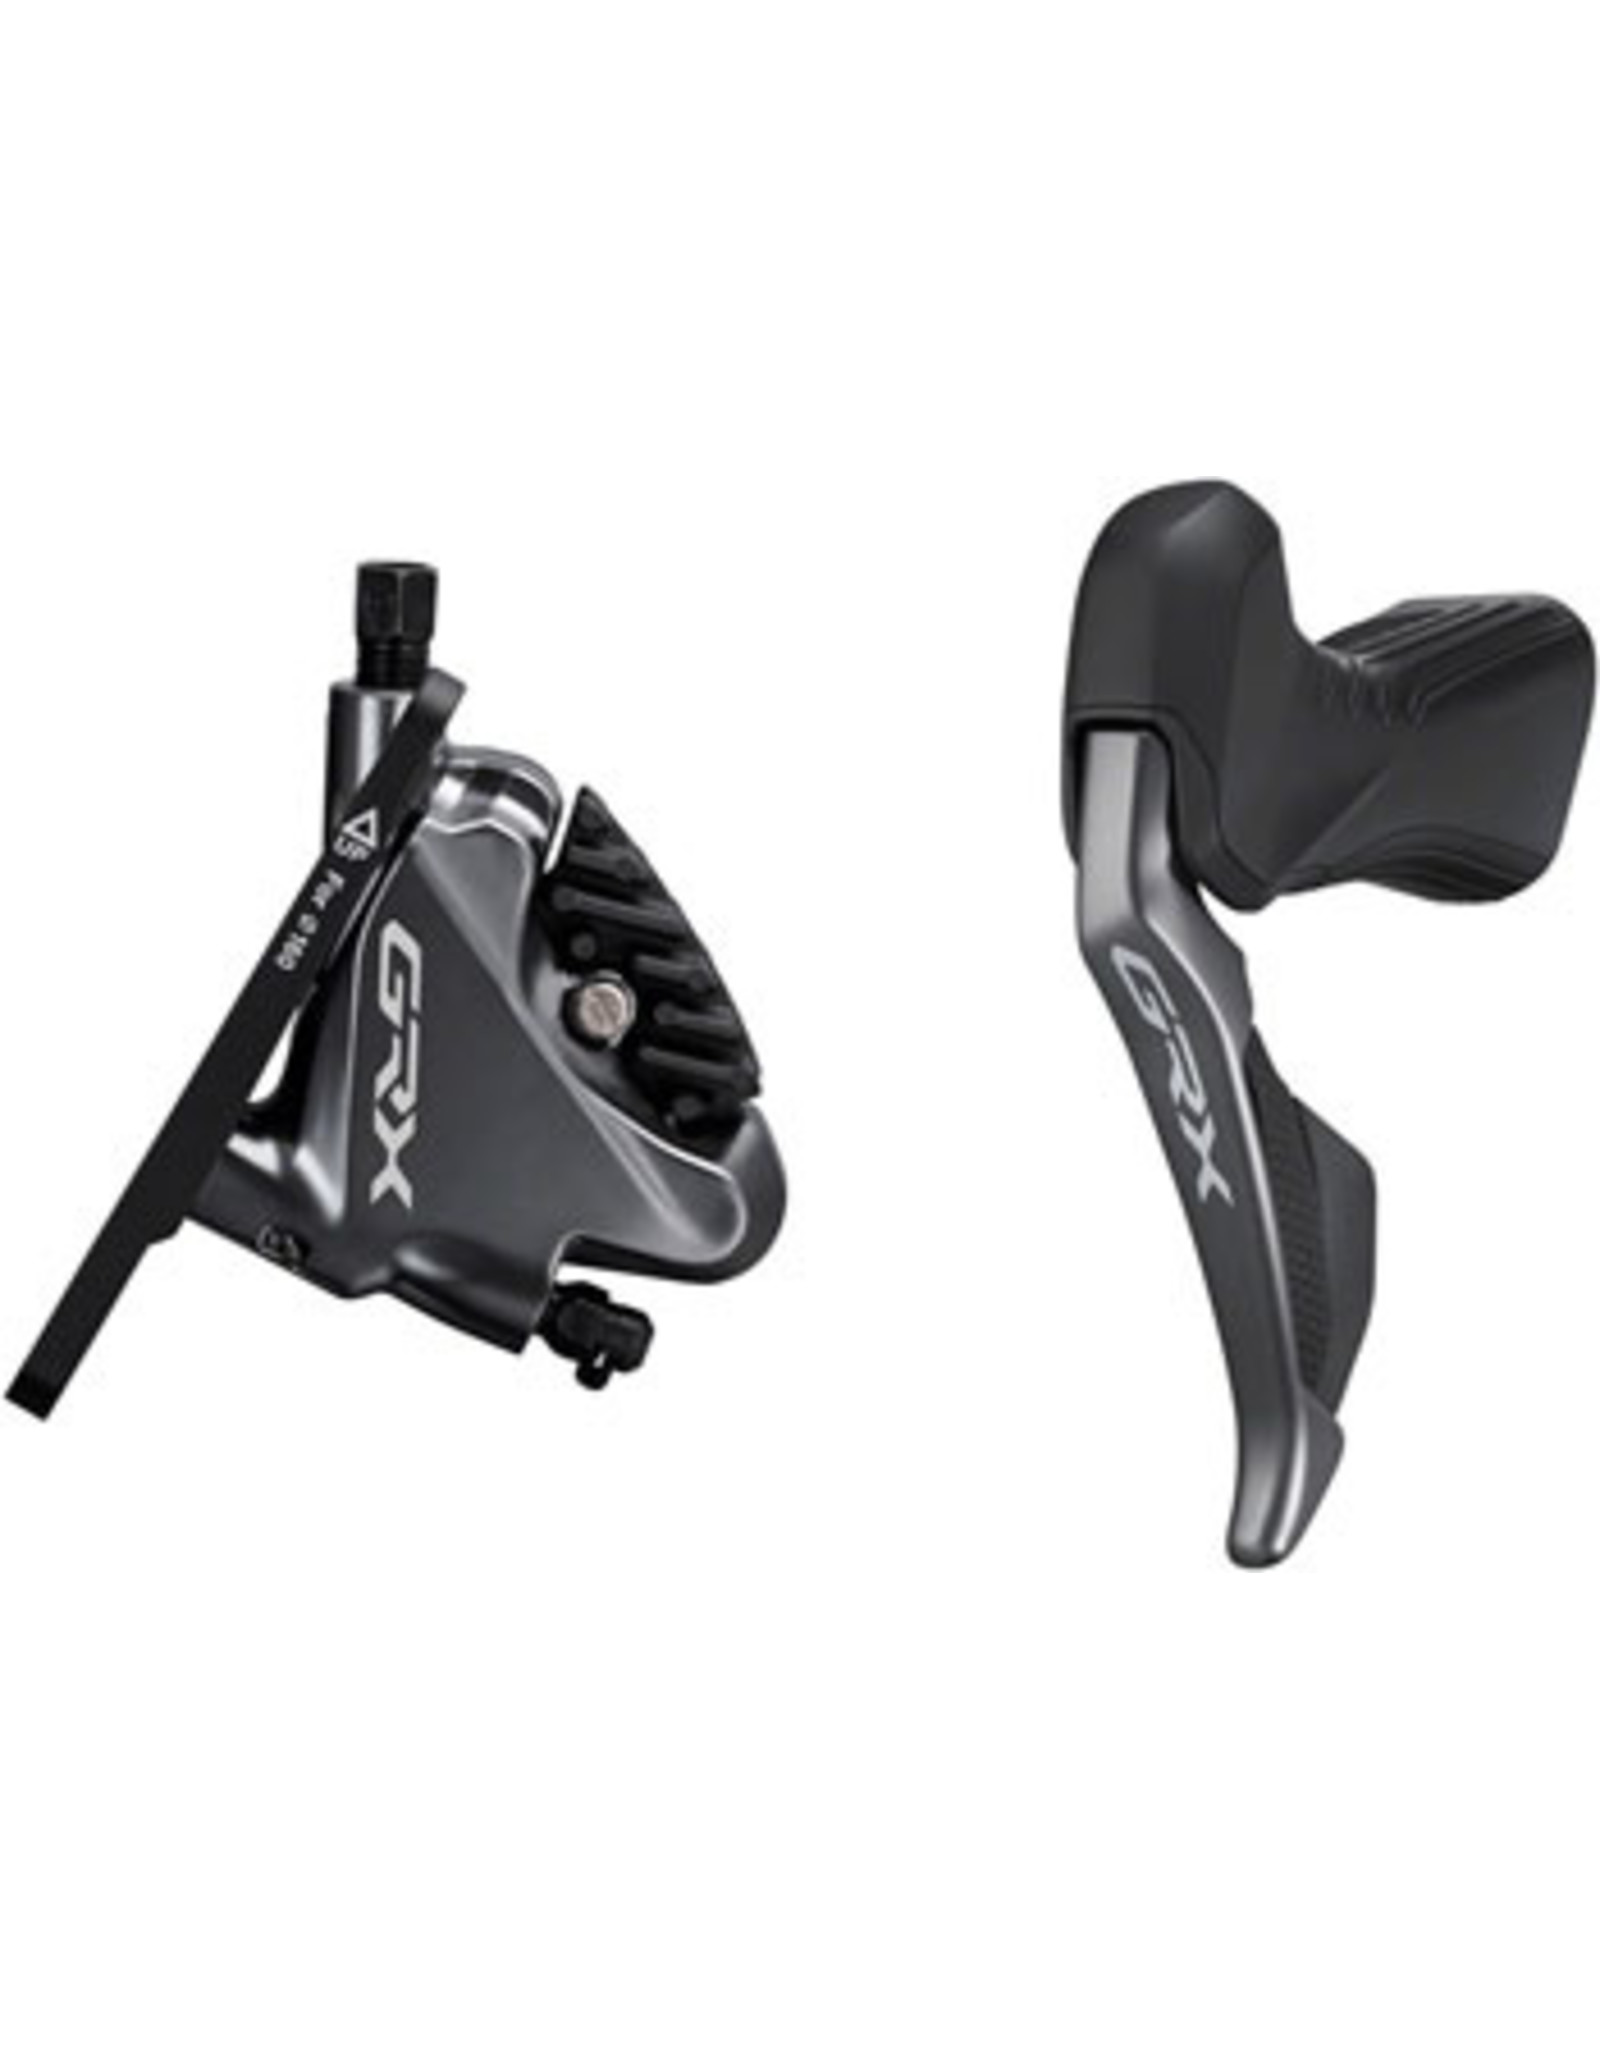 GRX ST-RX815 2 x 11-Speed Di2 Left Drop-Bar Shifter/Hydraulic Brake Lever with BR-RX810 Flat Mount Caliper, Pre-Bled, 1000mm Hose